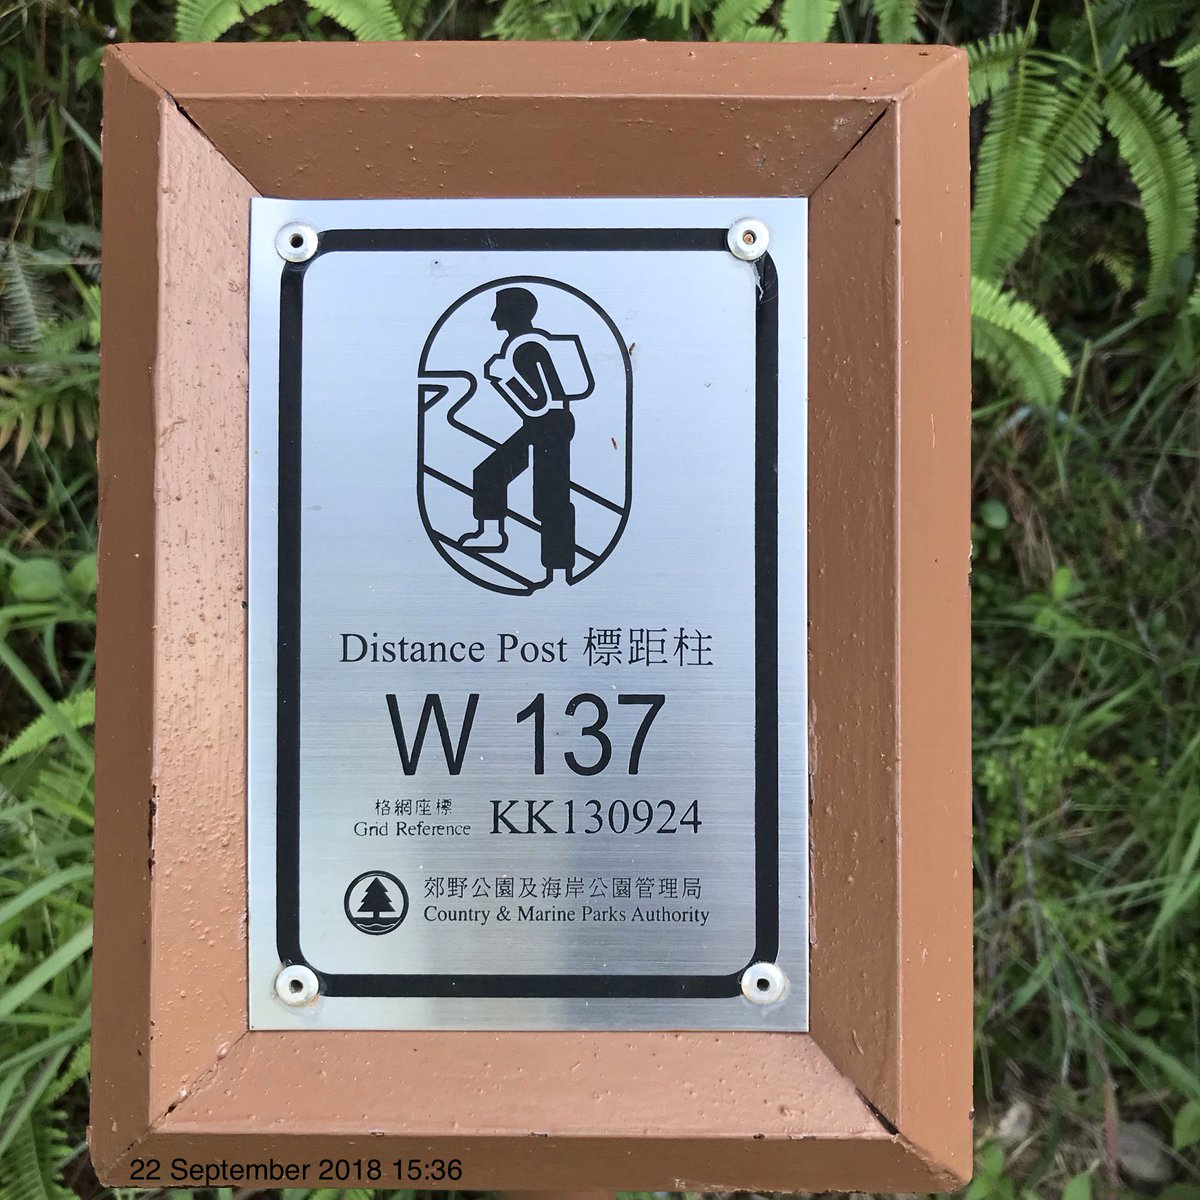 Northern terminus of Wilson trail: constructed for the people of Hong Kong by the friends of the country parks